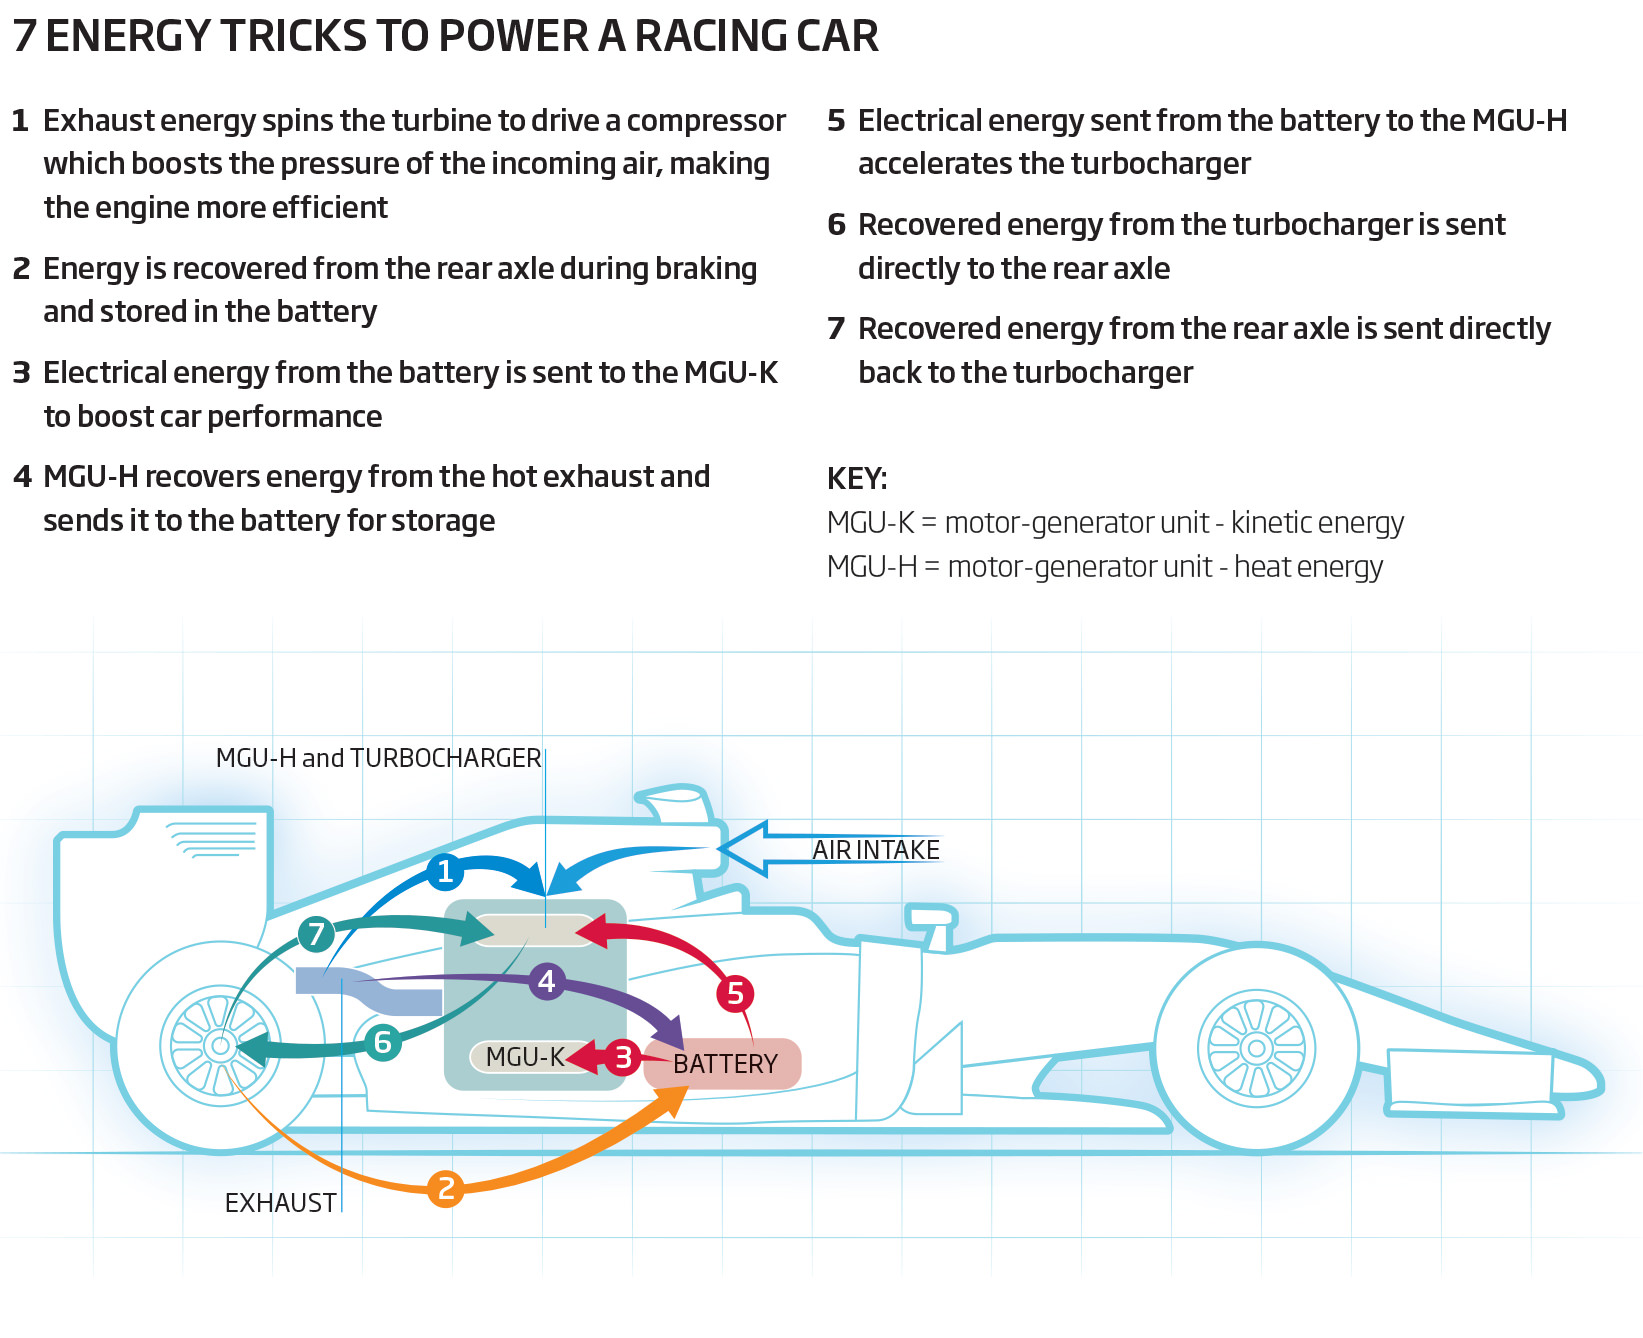 7 tricks to keep F1 cars fast and fuel-efficient | New Scientist